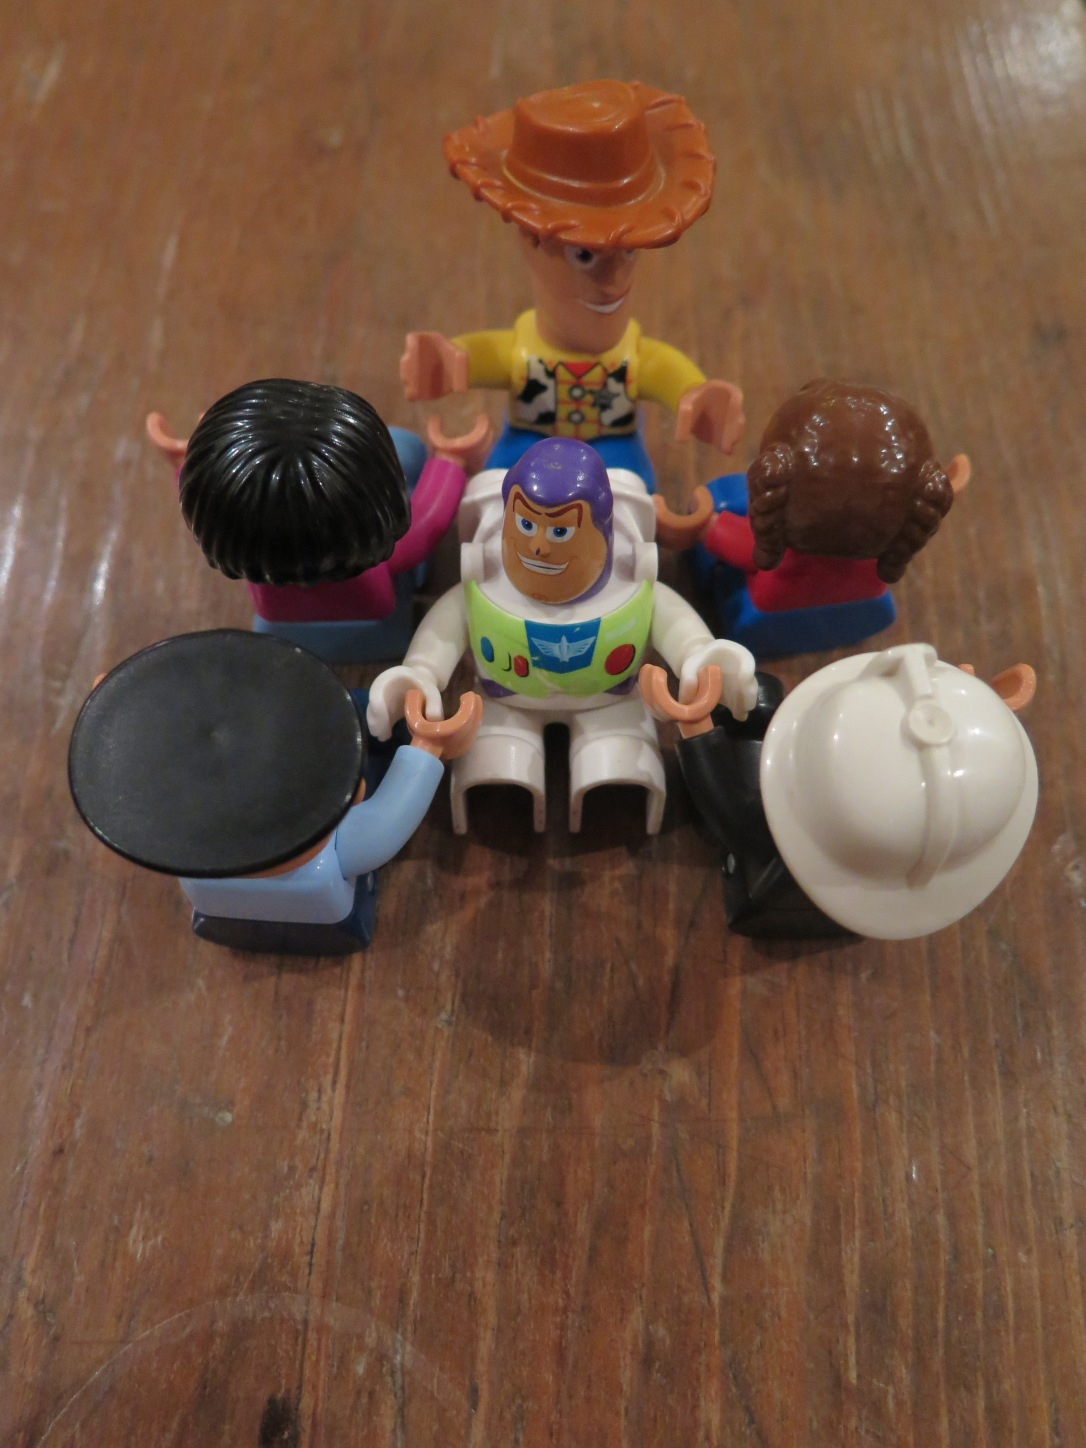 Economy class airline seating plan demonstrated with Lego Duplo figurines